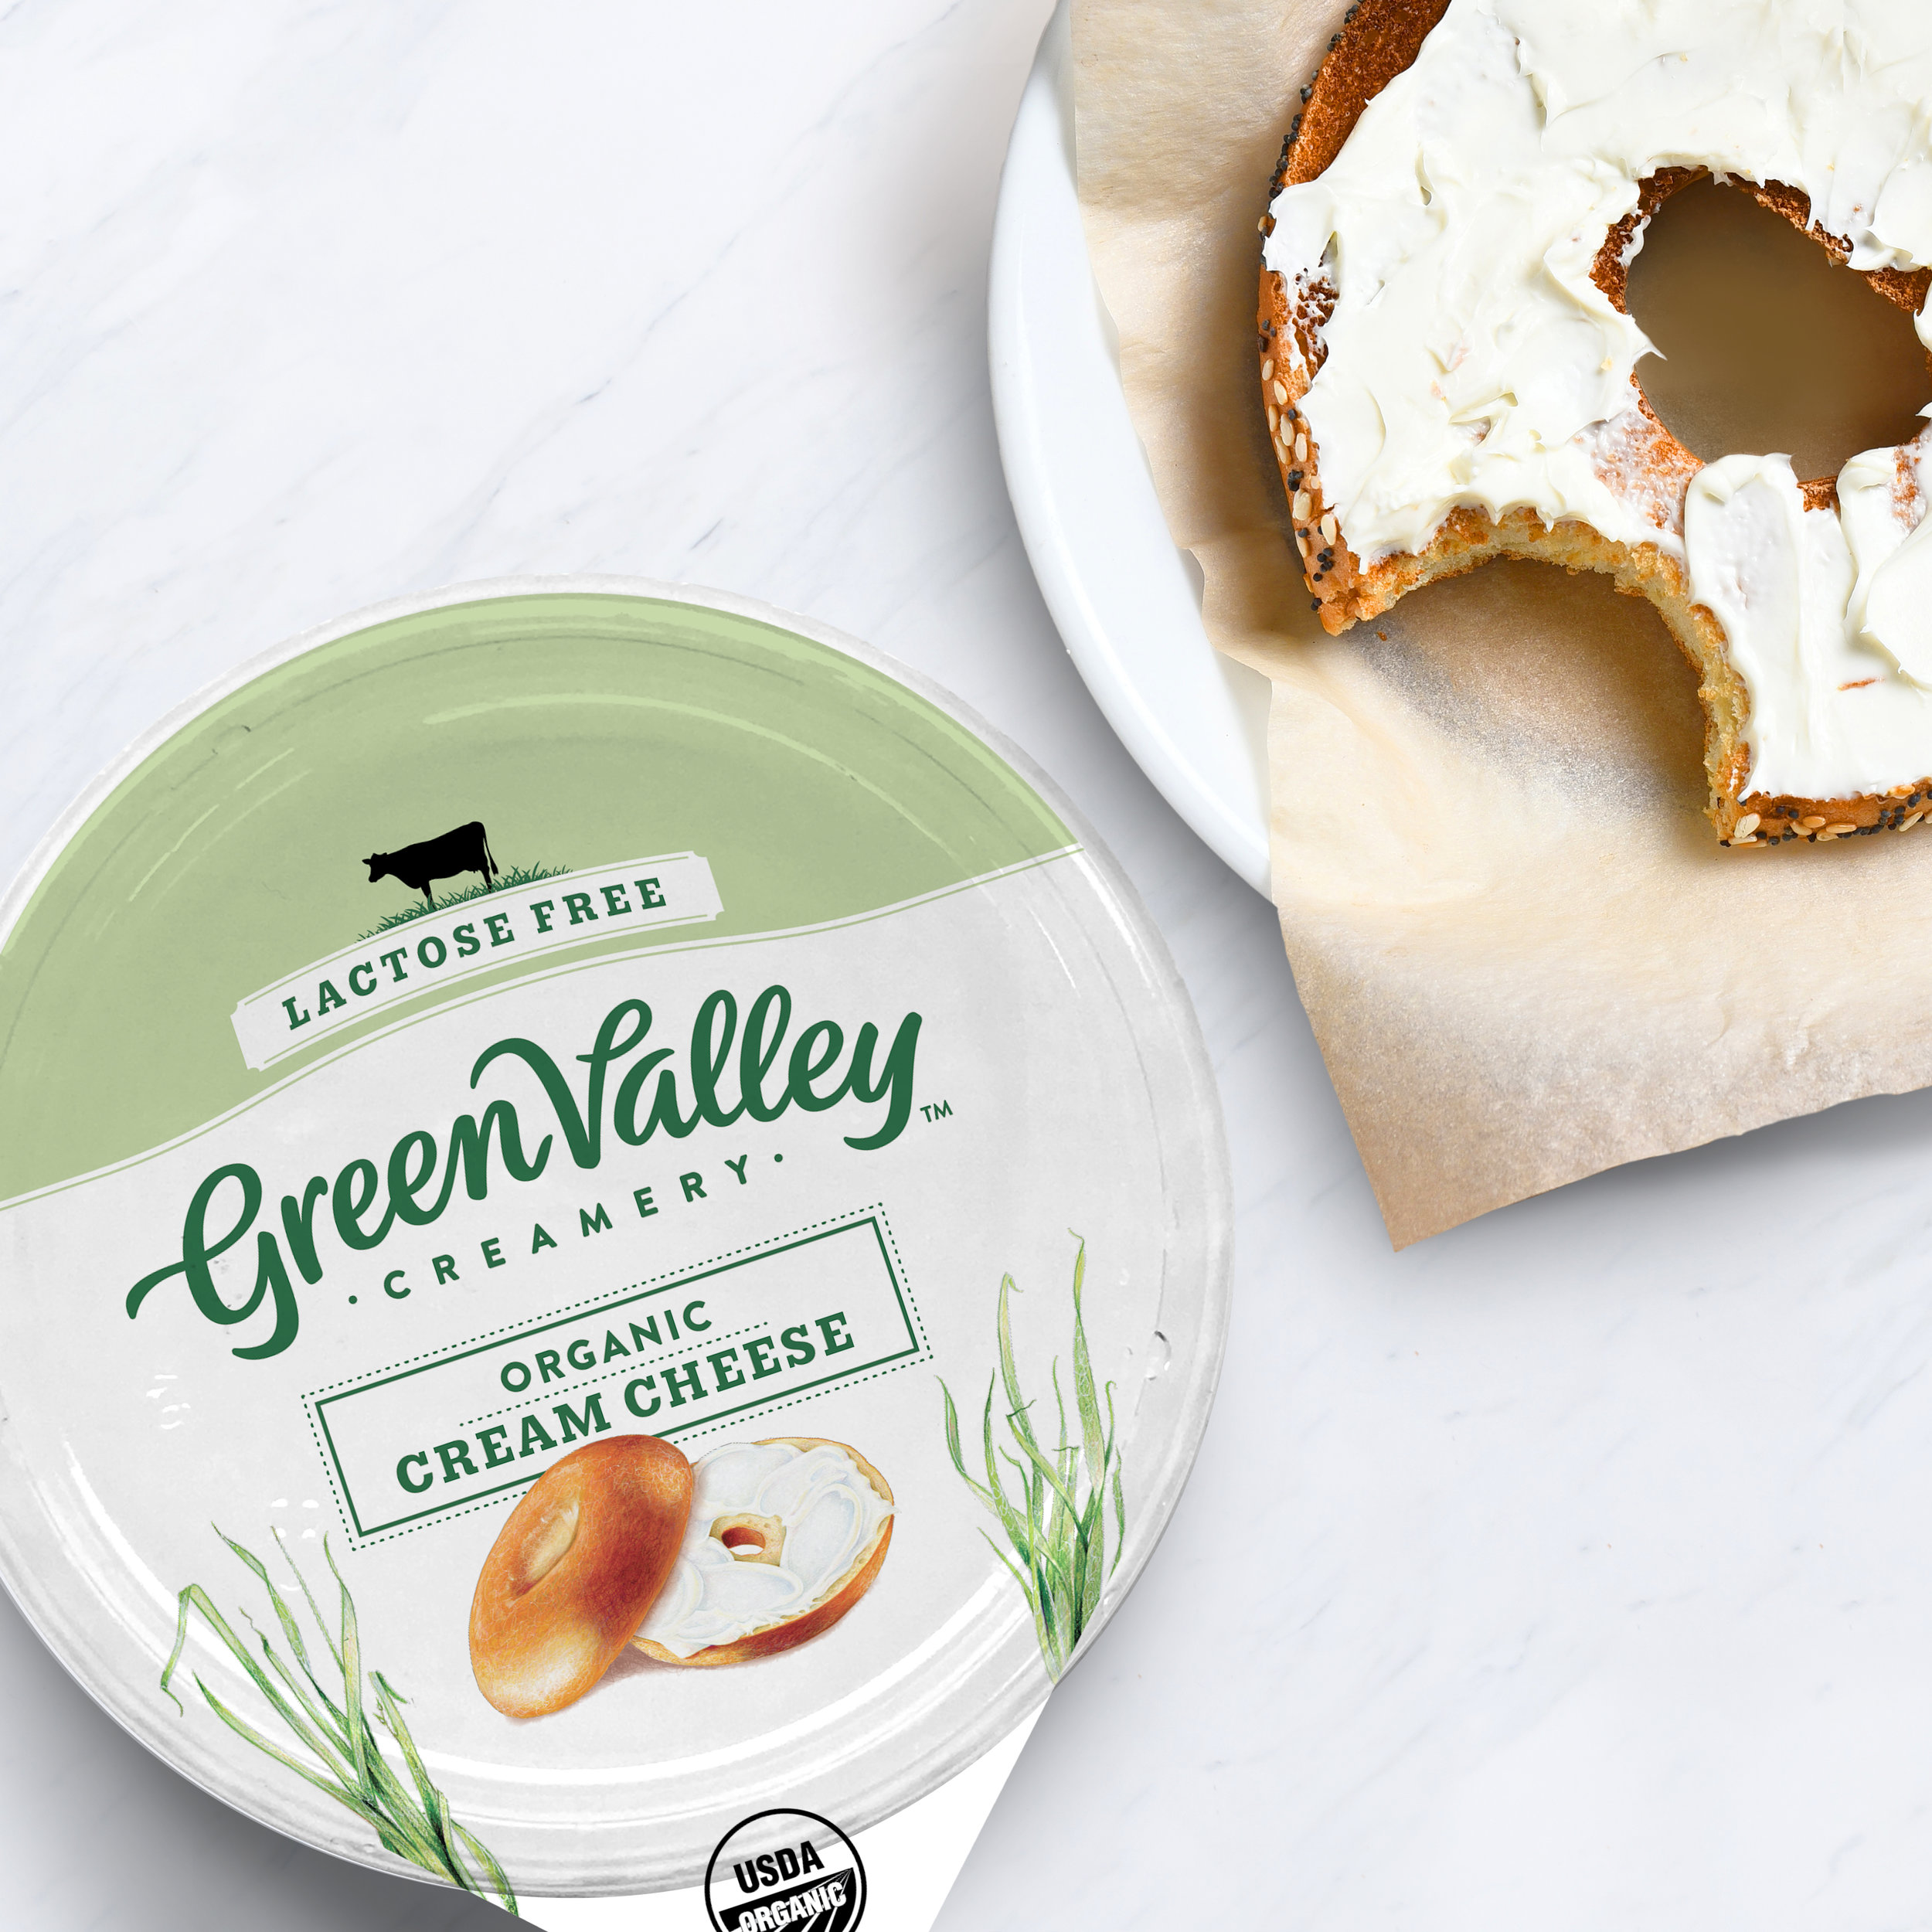 Green Valley Creamery Branding | Packaging Design